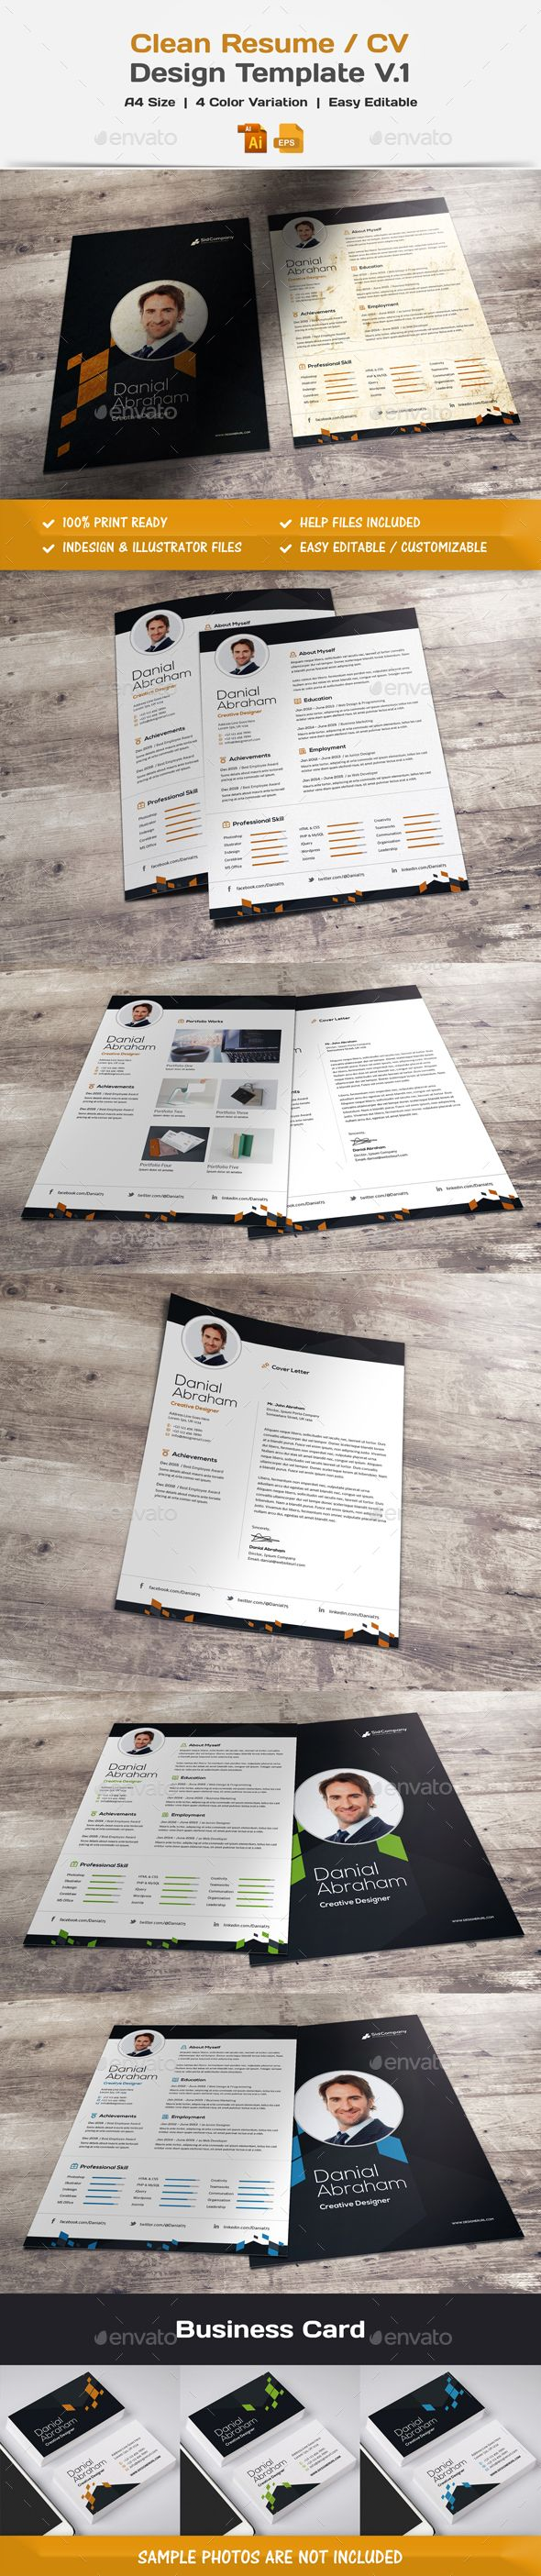 federal resume examples it specialist%0A how to get resume template on word Template